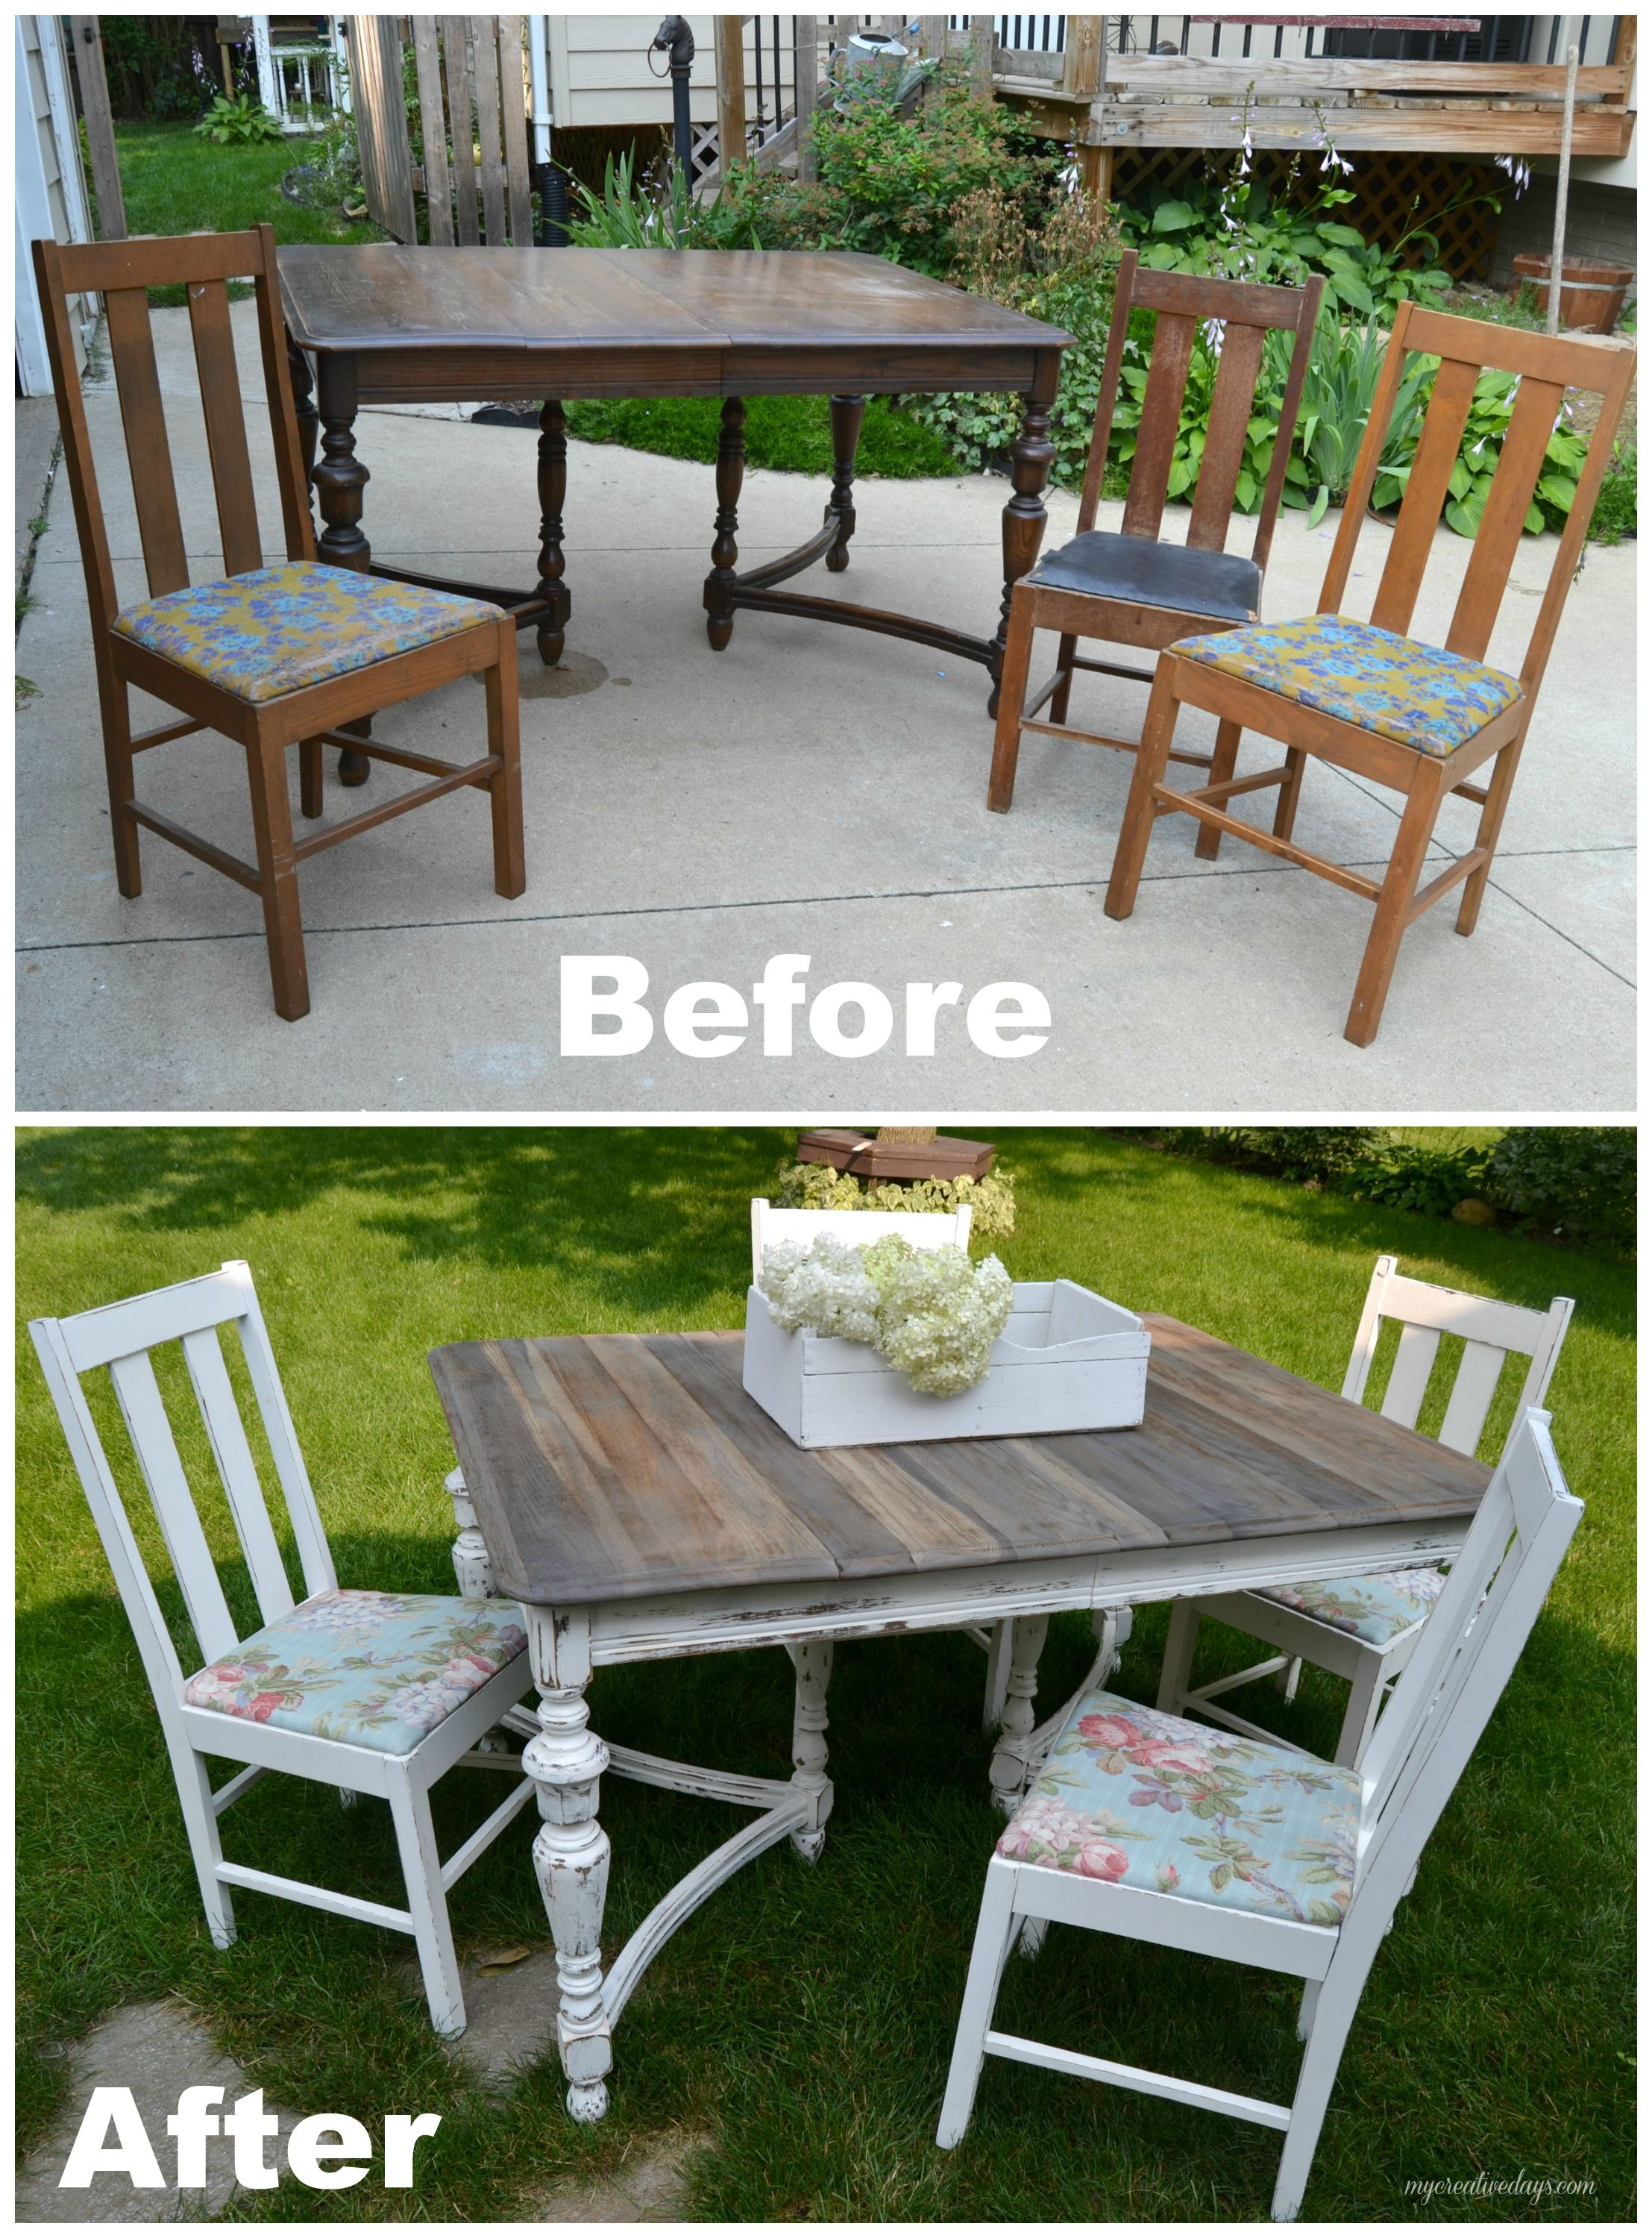 curbside table turned farm table | mismatched chairs, paint stain